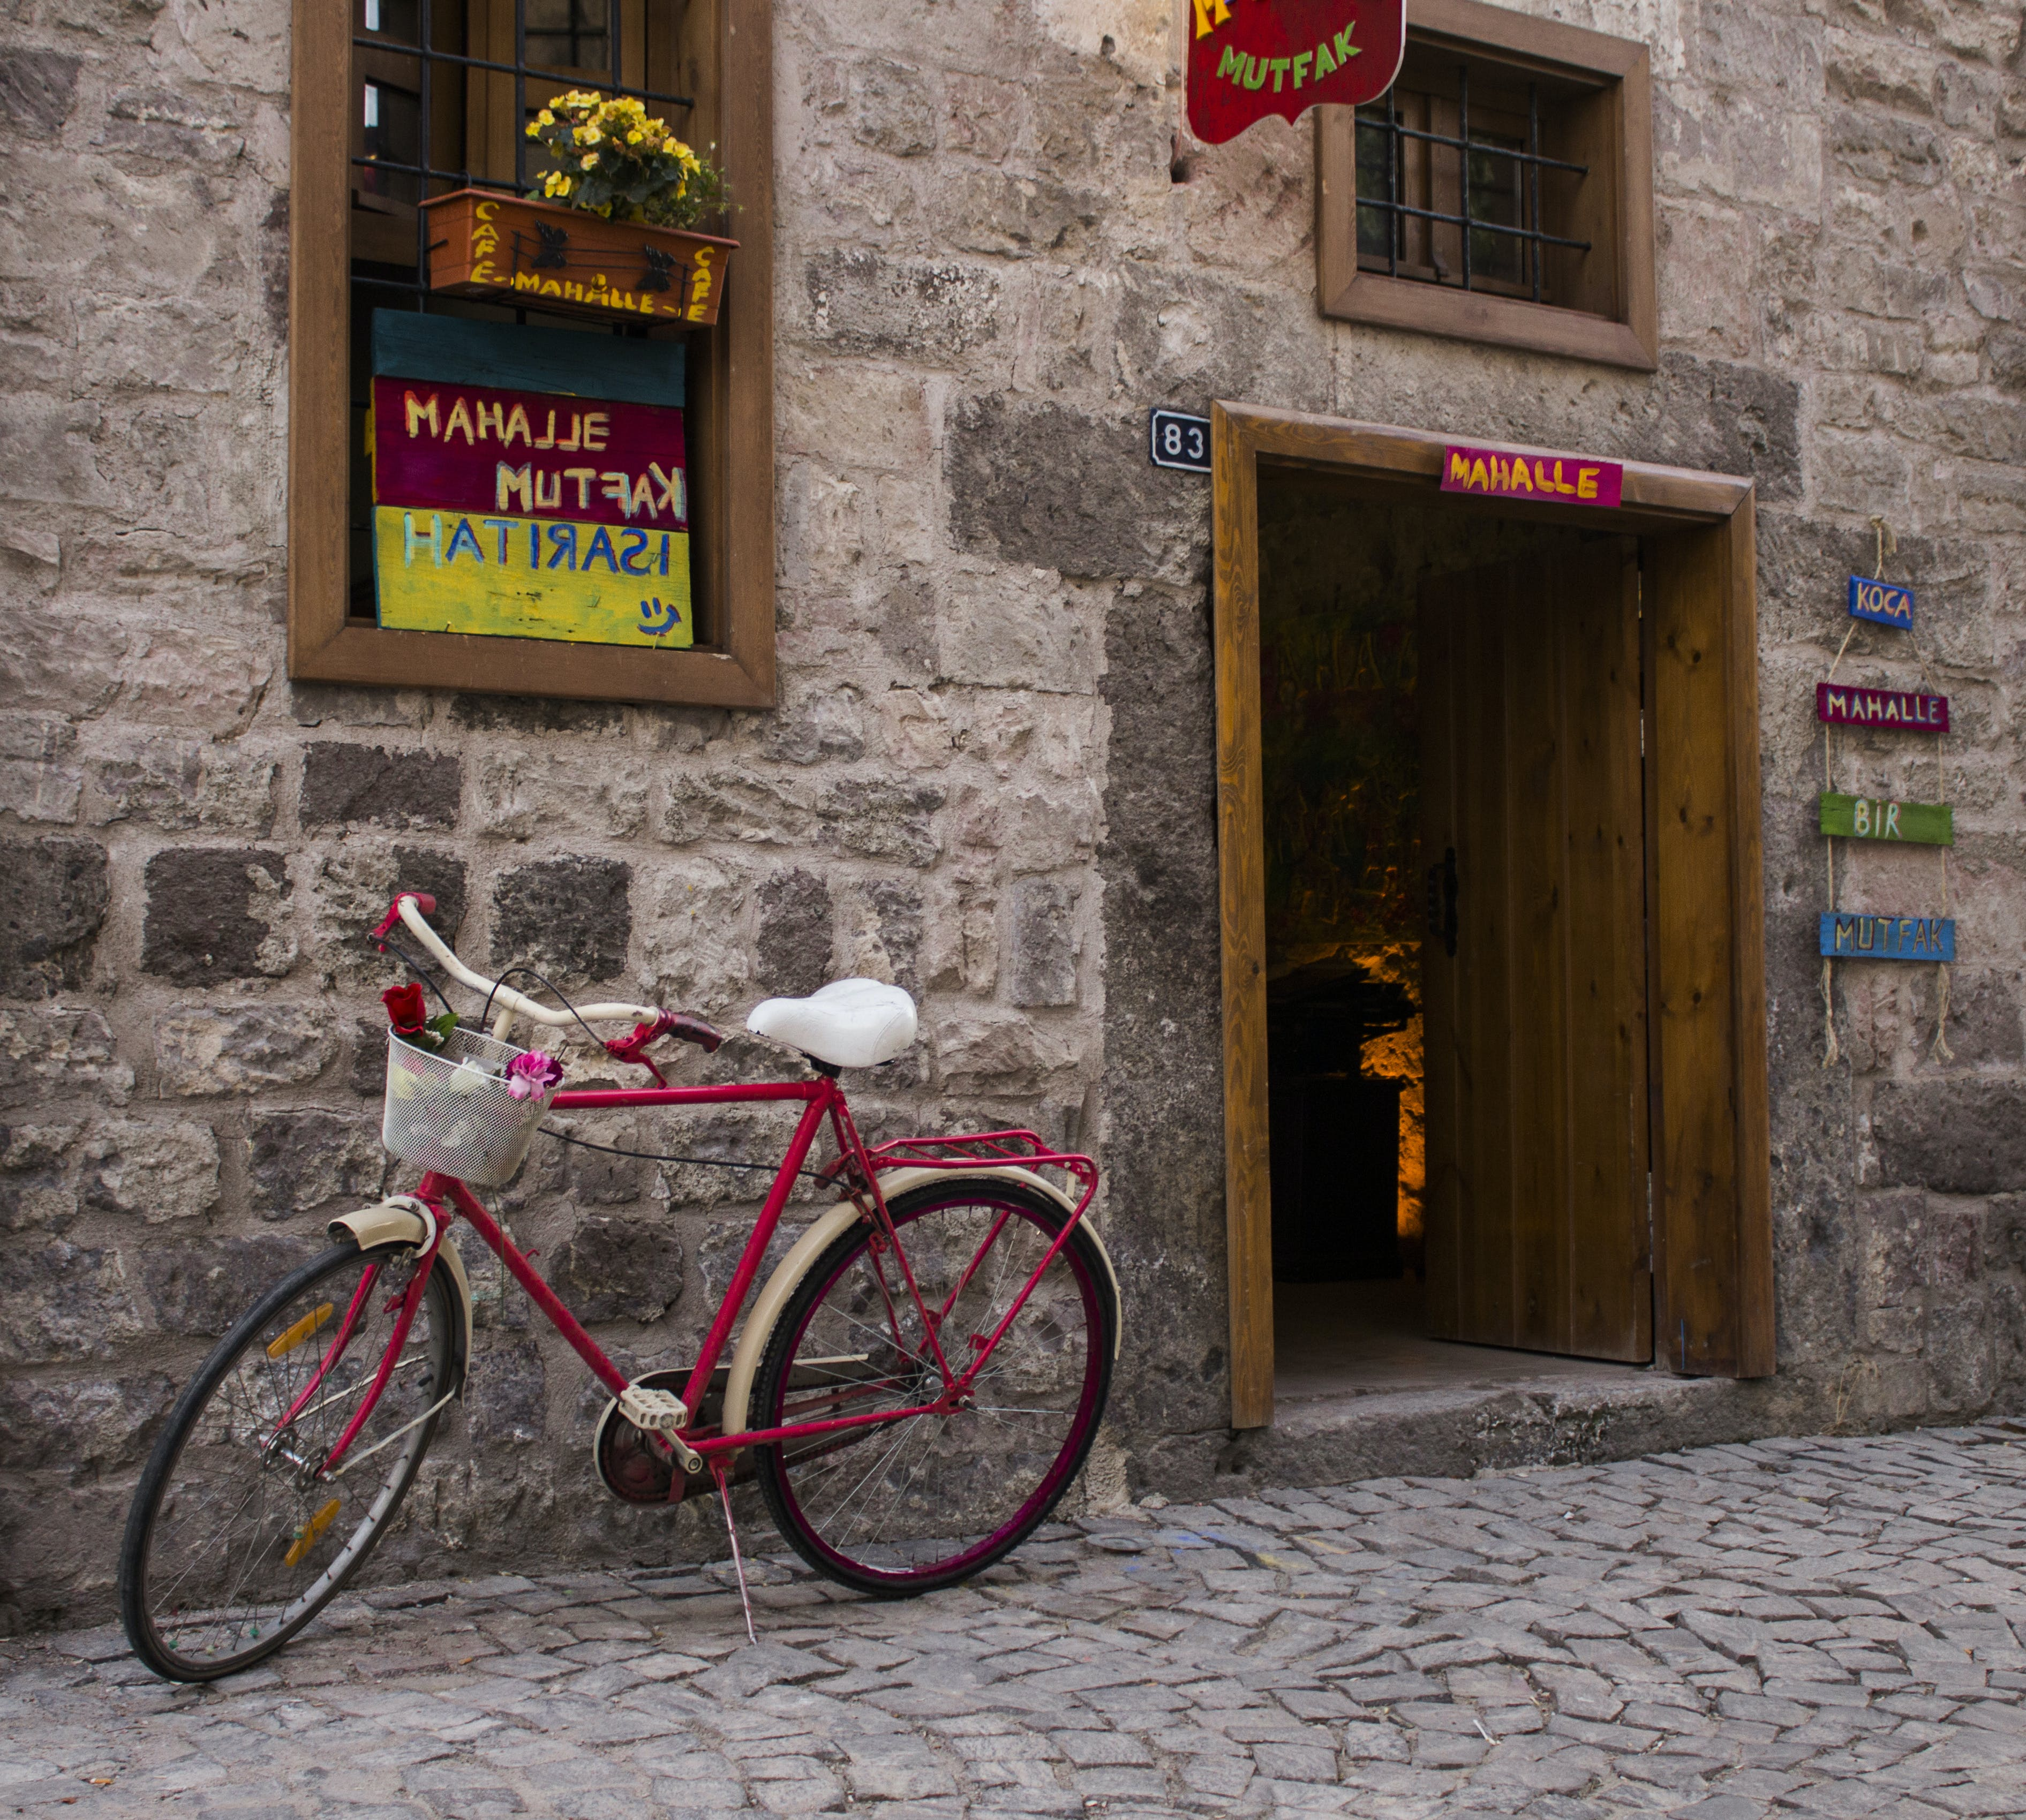 Free stock photo of bicycle, café, Historic Building, Pink bicycle